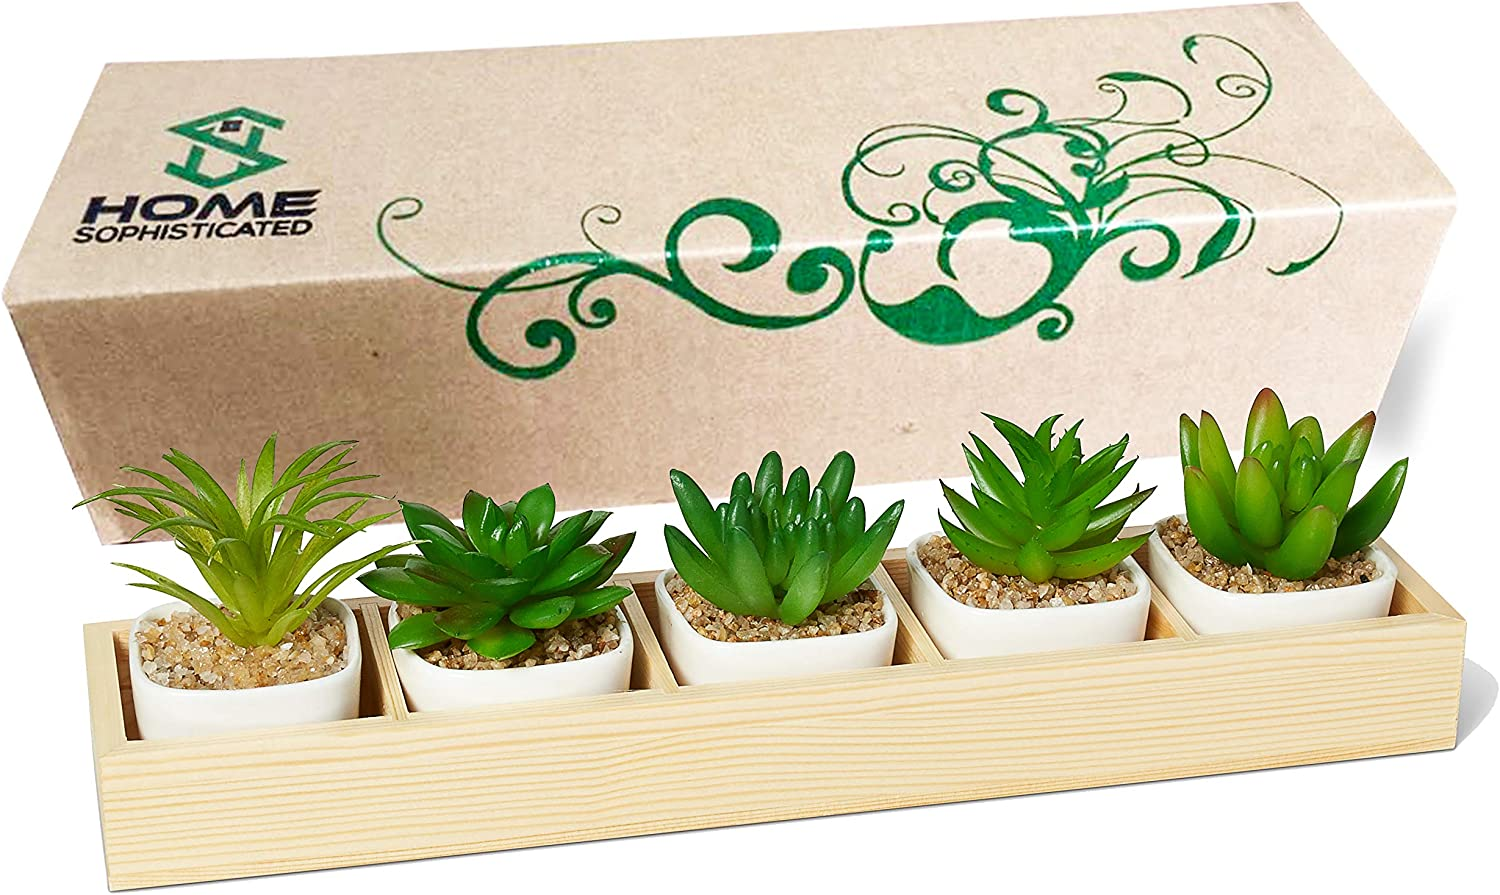 HomeSophisticated-Set of 5 Mini Fake Succulent Cactus Aloe Potted Plant Arrangements-Decorative Assorted Potted Artificial Succulent Plants in White Pots-Succulent Plants Wood Planter Arrangement